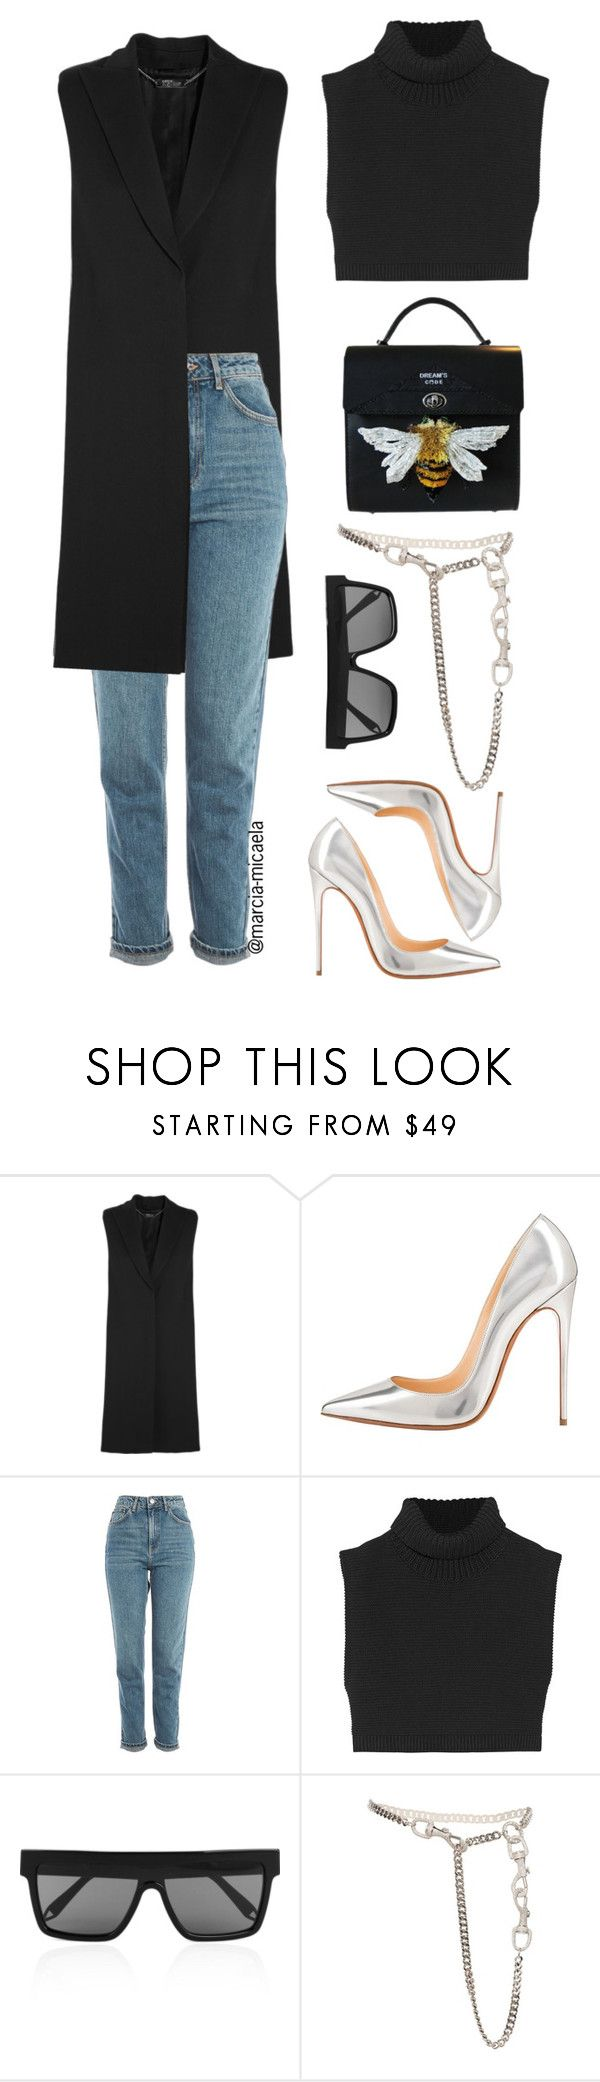 """""""• MINI BAG •"""" by marcia-micaela ❤ liked on Polyvore featuring Alexander McQueen, Topshop, Victoria Beckham and Christian Dior"""